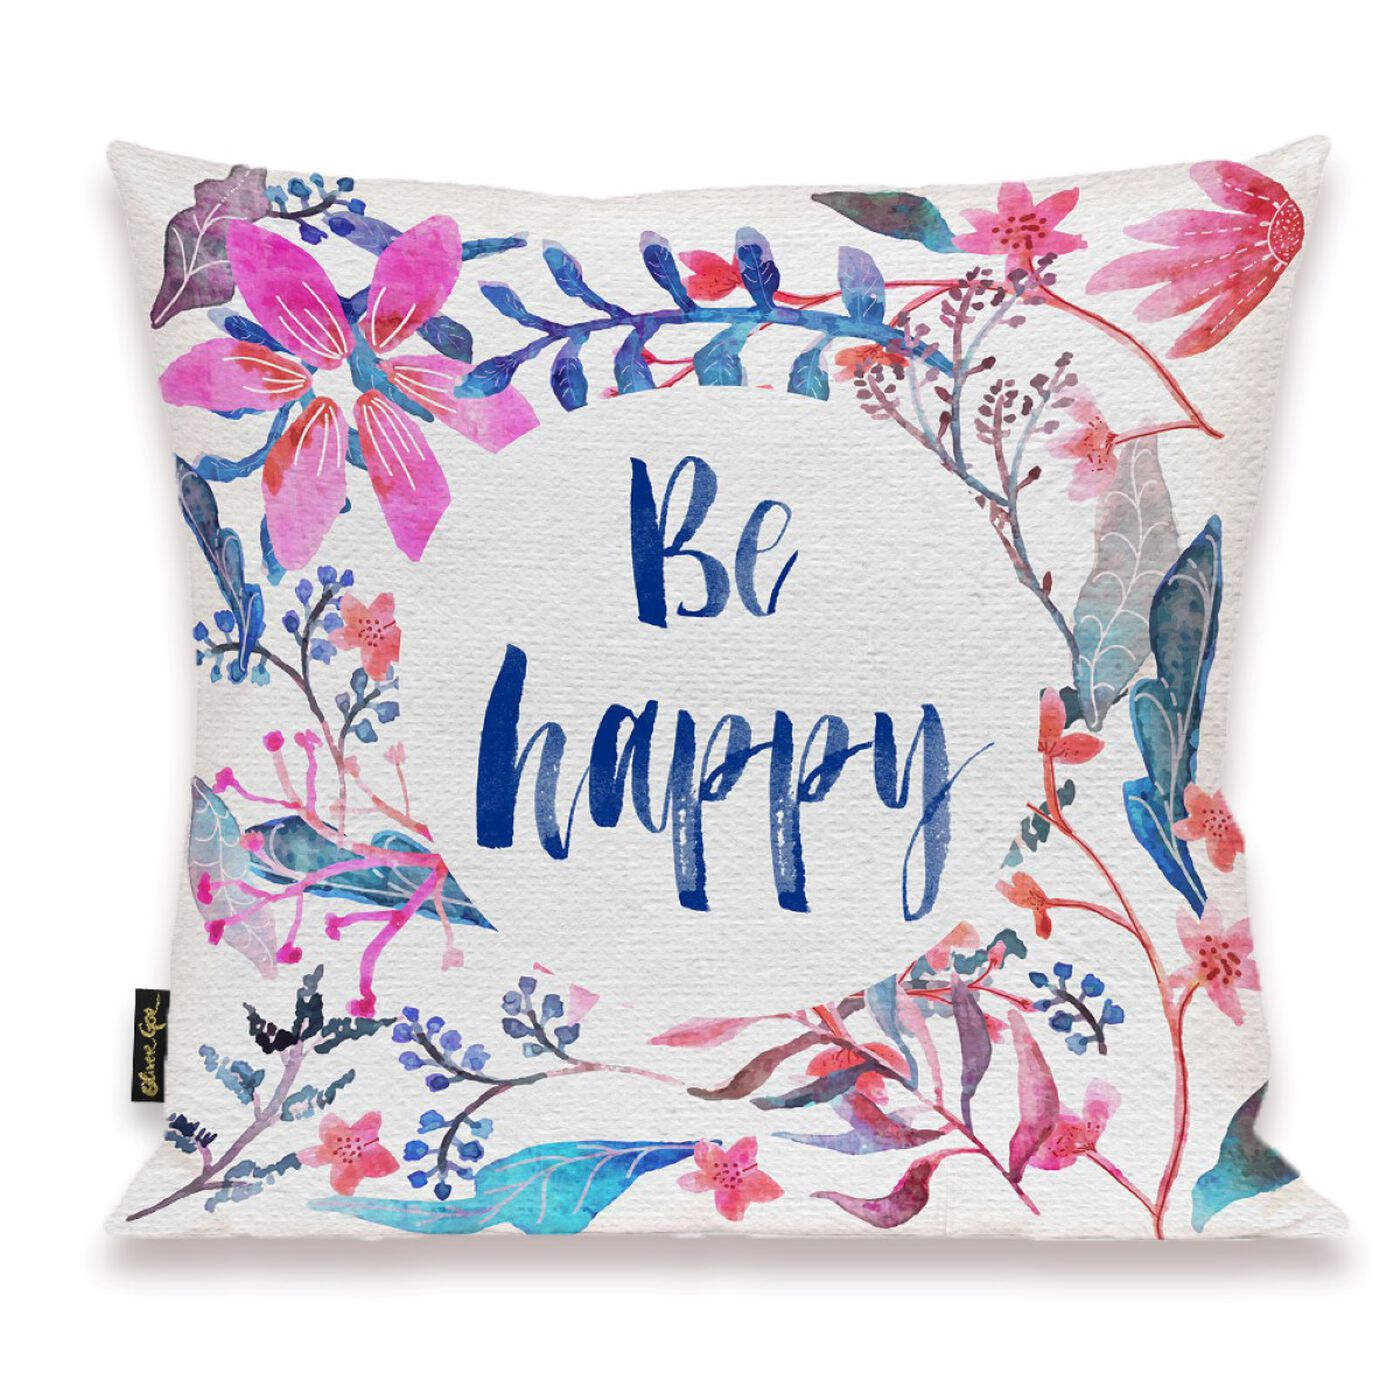 Colorful Happy Pillow